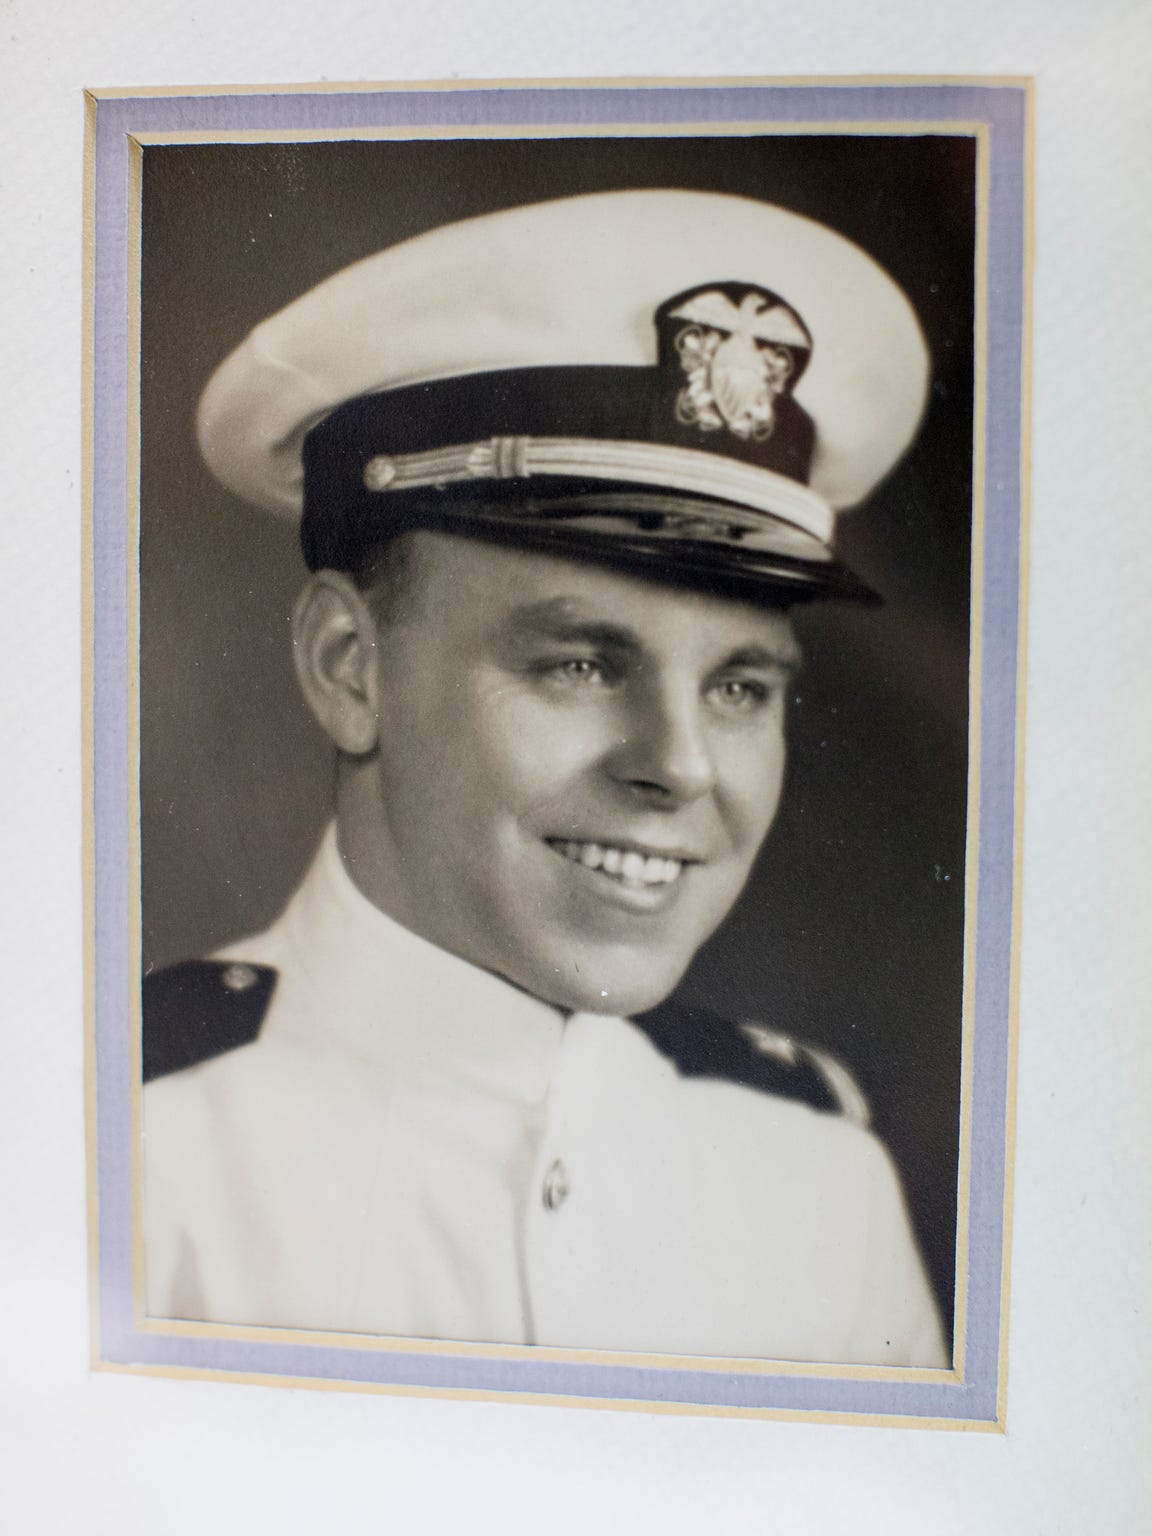 When the Pearl Harbor attack began, Joe Langdell was on Ford Island where he had spent the night in officer's quarters. He helped recover bodies and other items from the sunken ship.